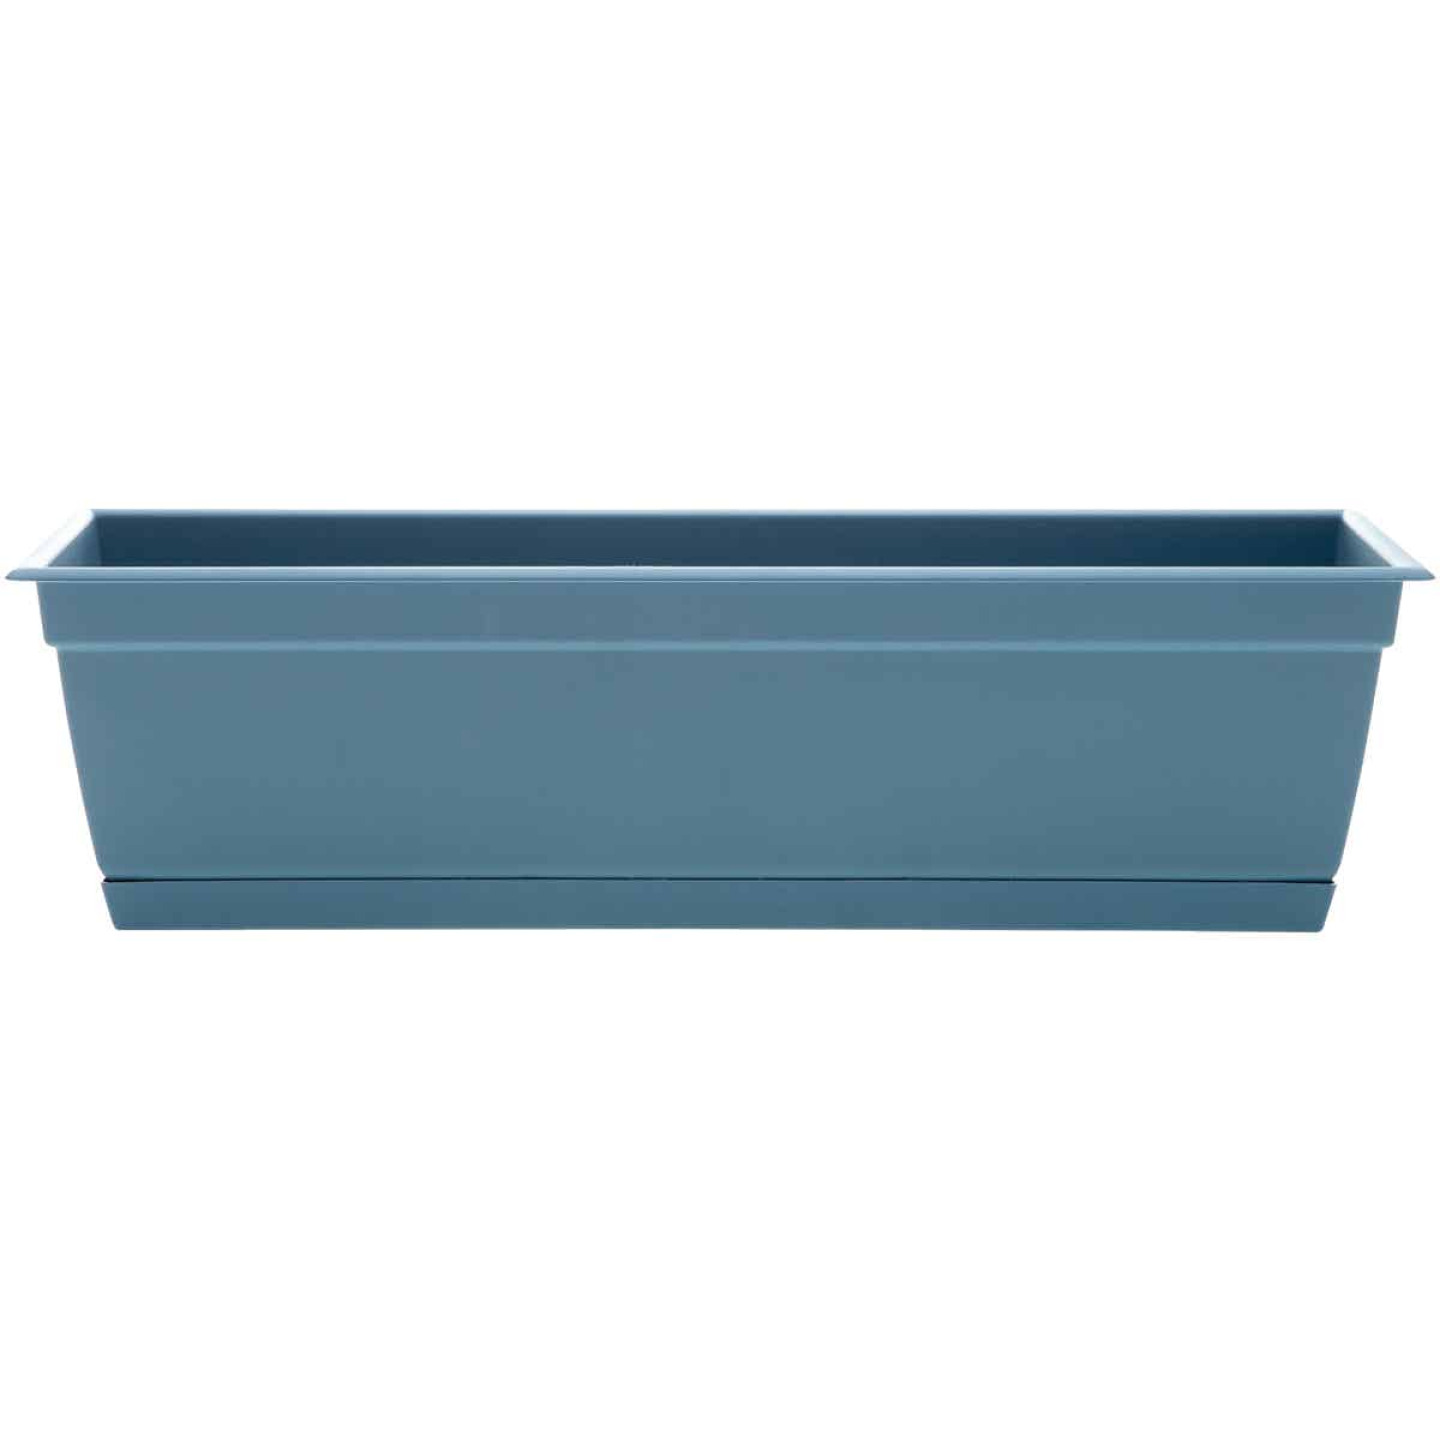 Bloem Ocean Series Dayton 24 In. W. x 6.69 In. H. x 7.75 In. D. Recycled Ocean Plastic Ocean Blue Window Box Image 1